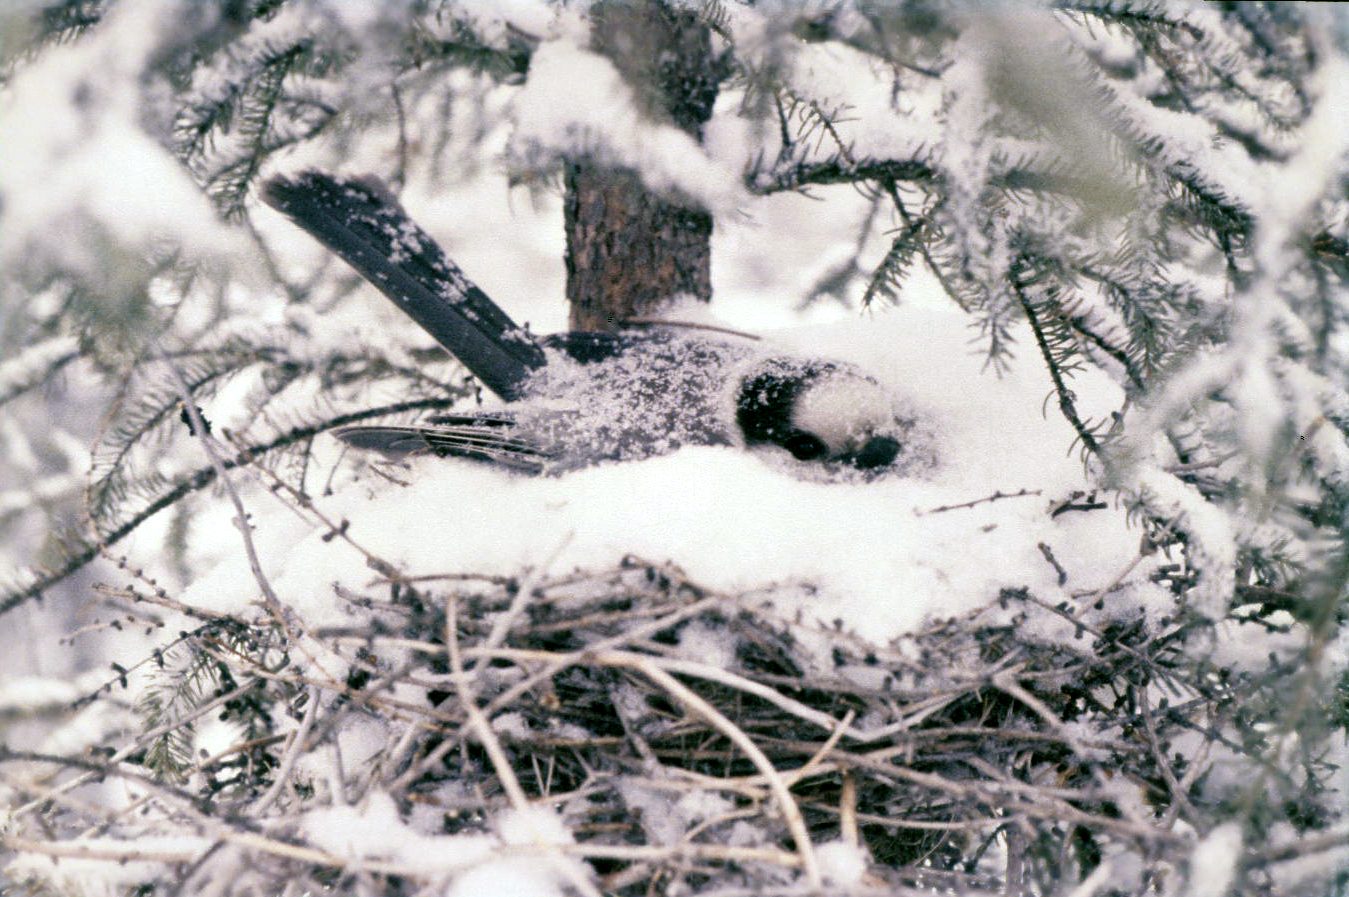 Gray Jay on nest